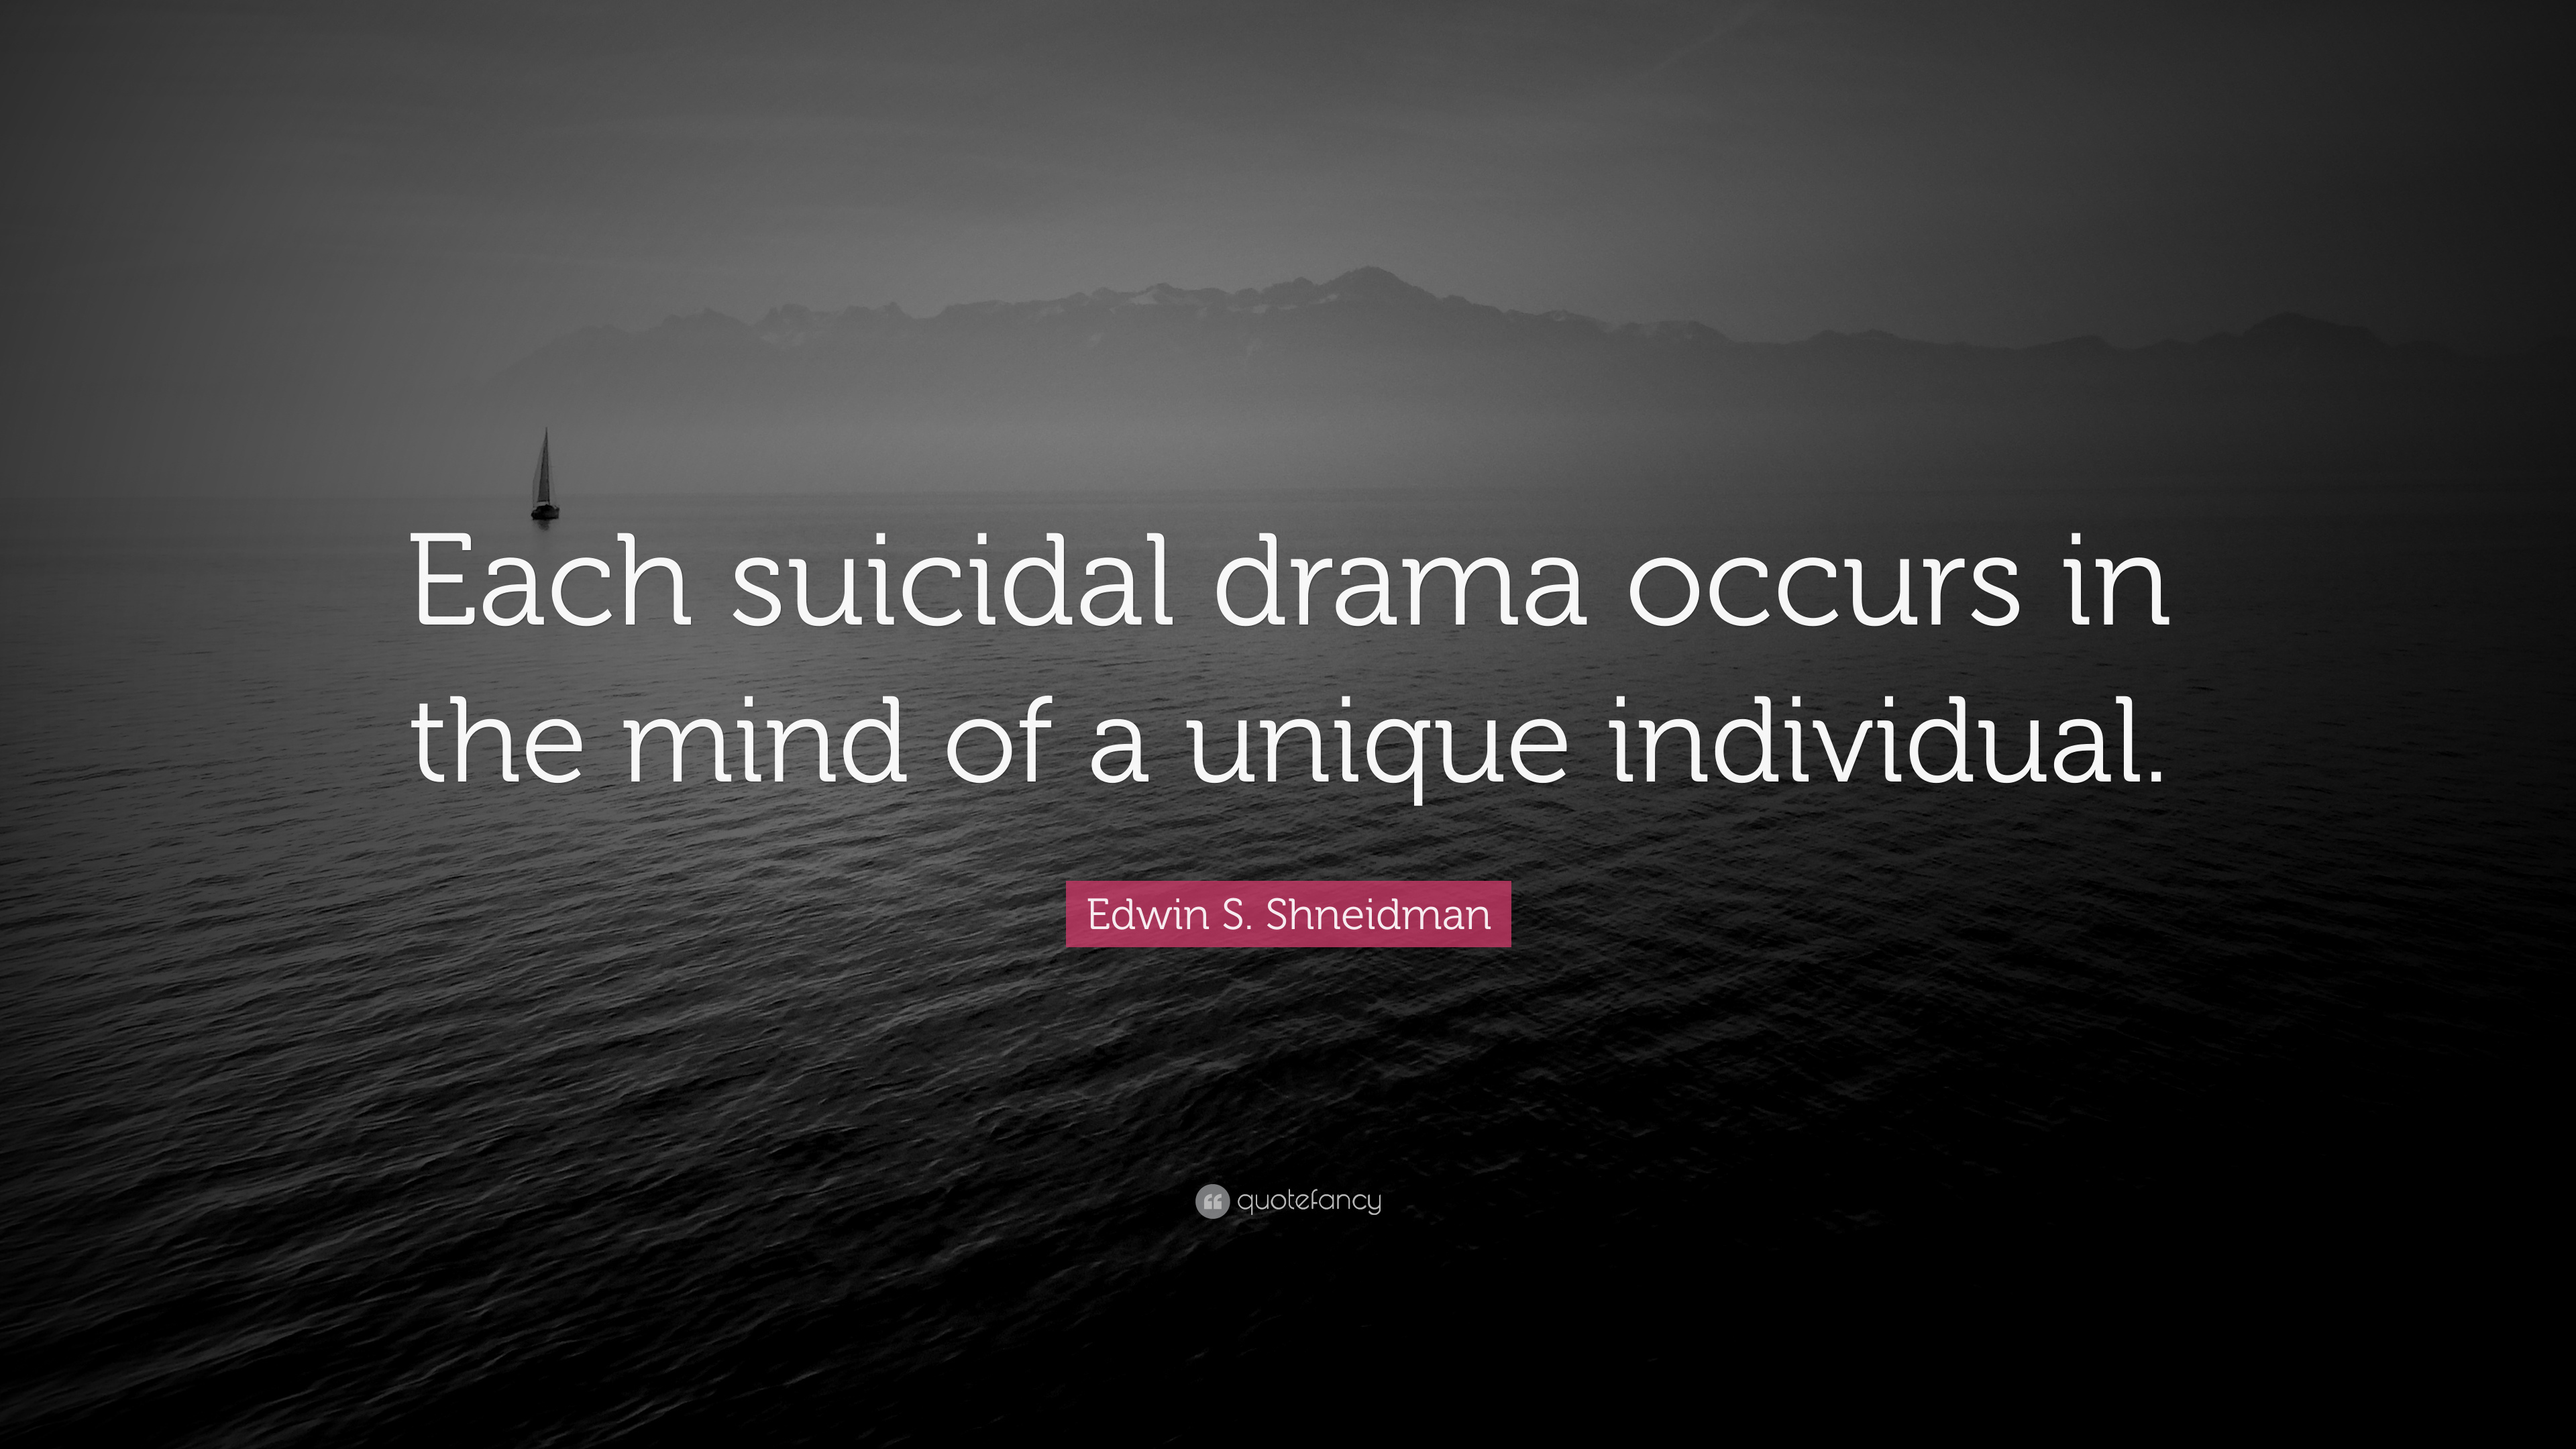 Edwin S Shneidman Quote Each Suicidal Drama Occurs In The Mind Of